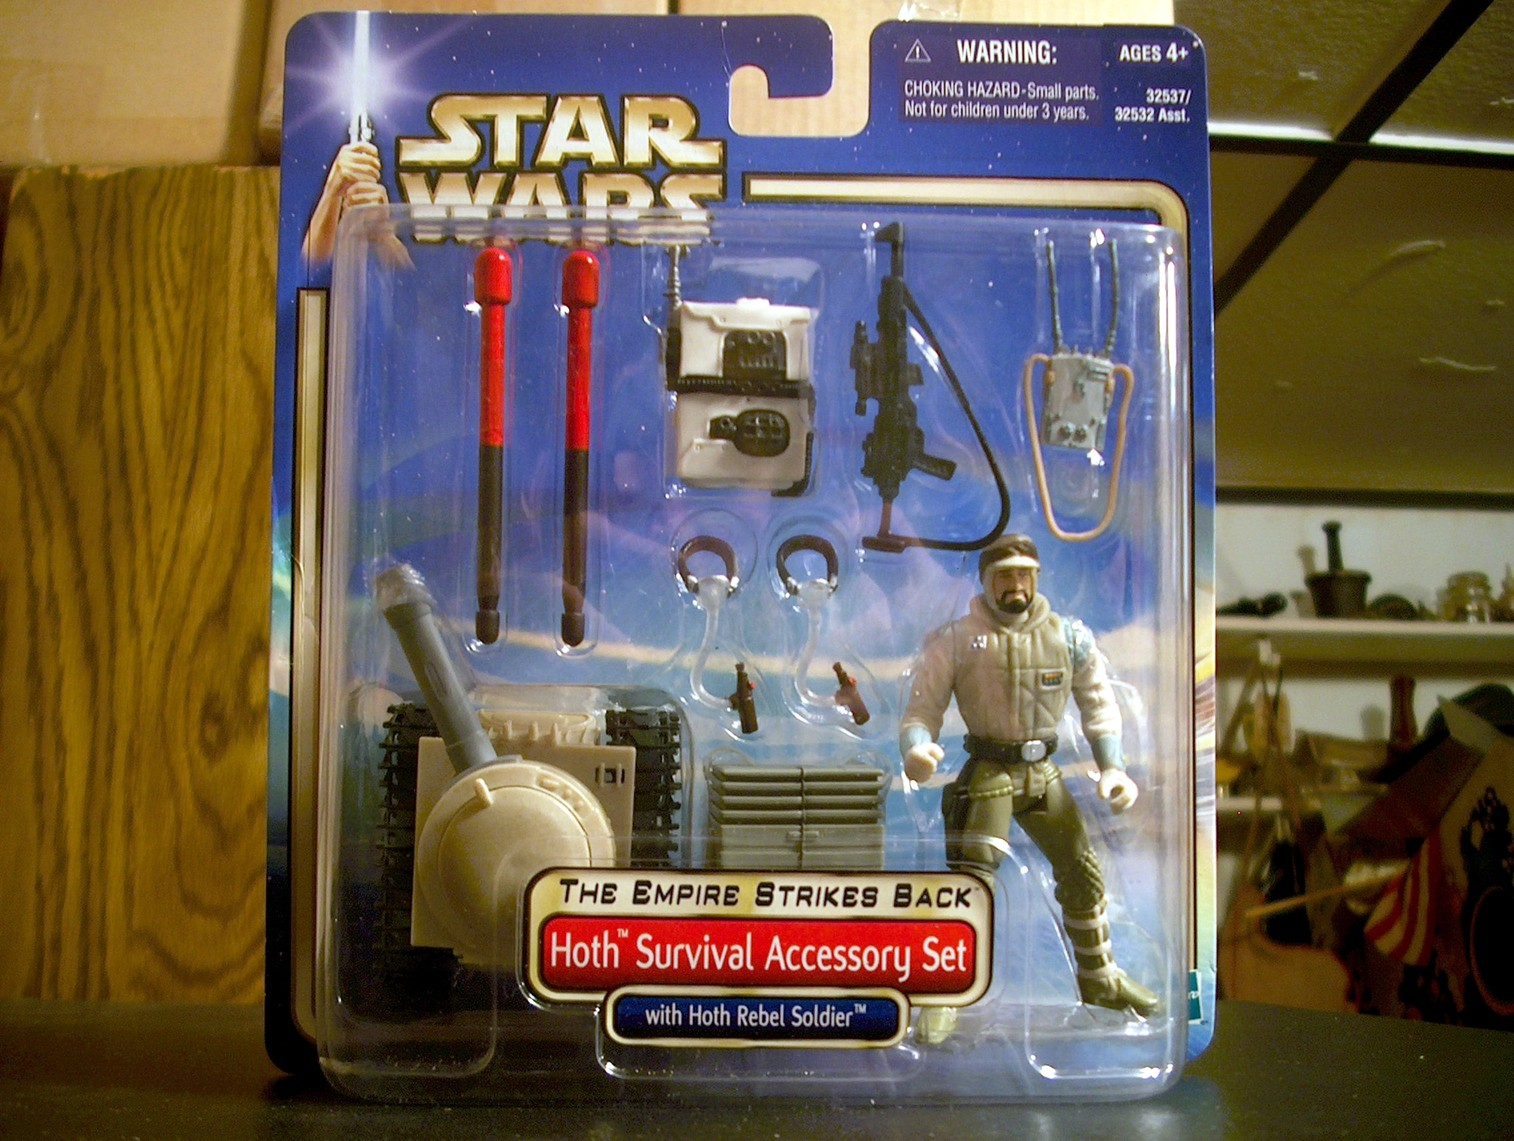 Hoth Survival Accessory Set with Hoth Rebel Soldier